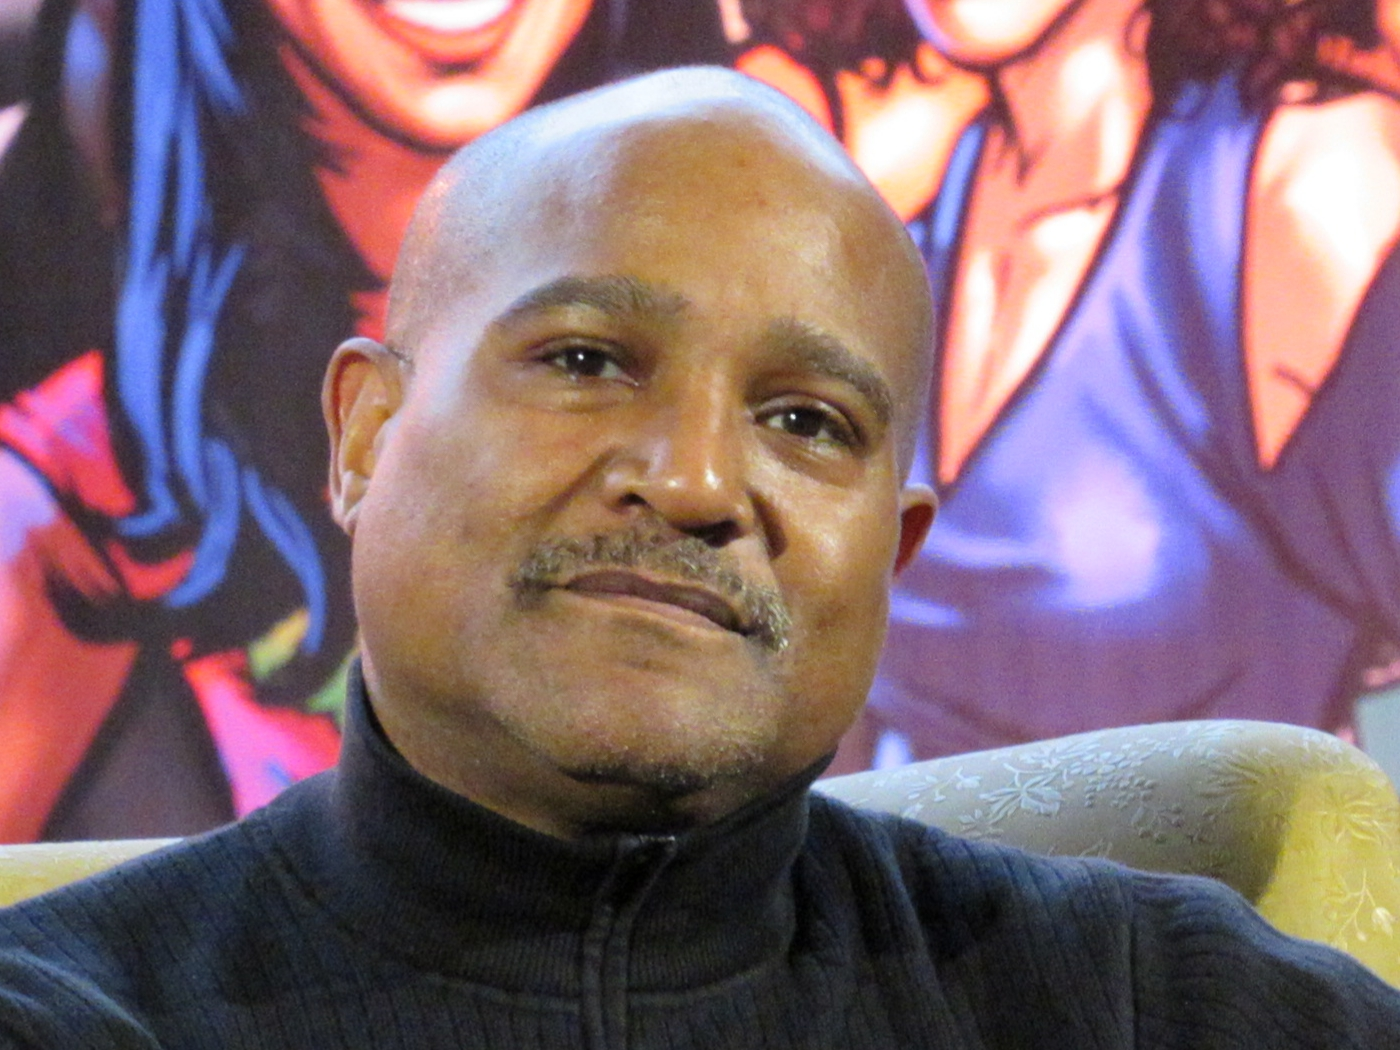 Seth Gilliam at Comic Con Brussels